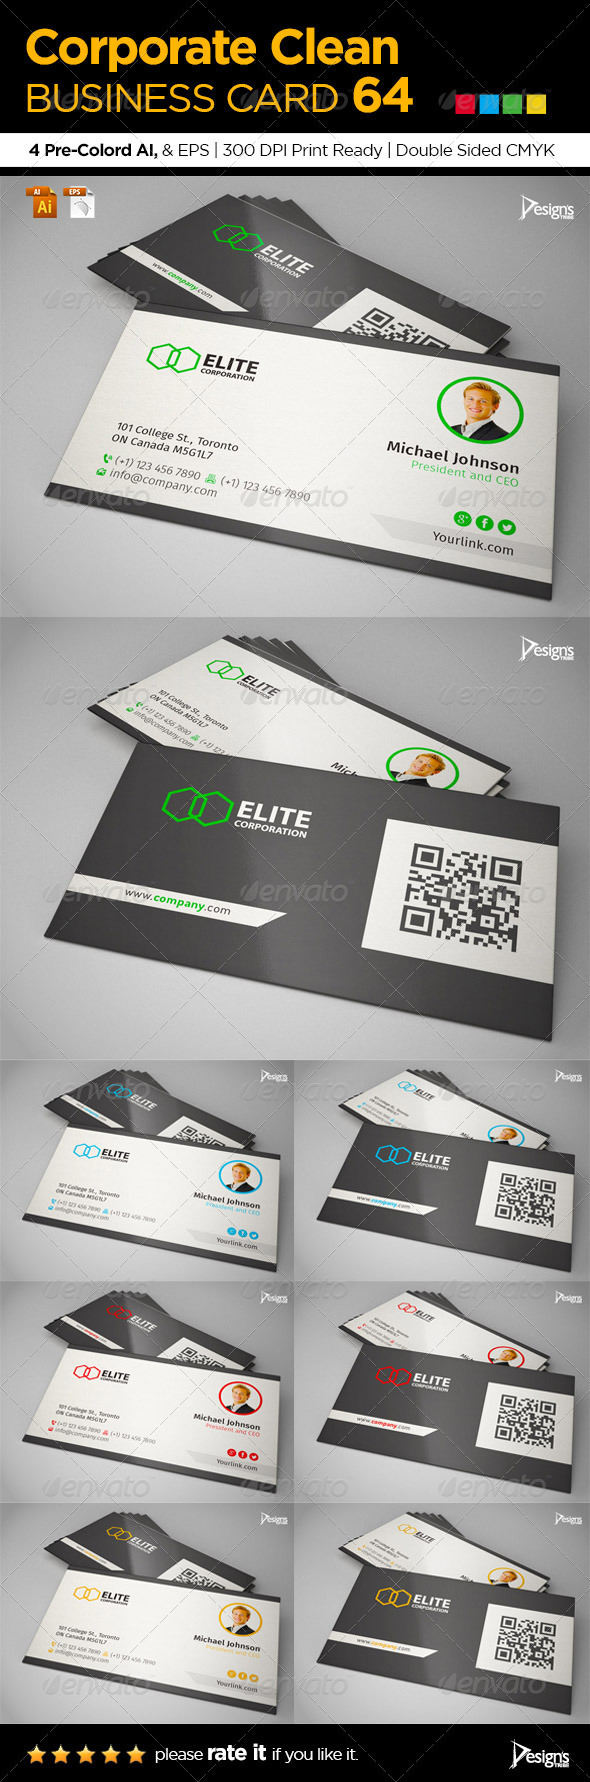 GraphicRiver Corporate Clean Business Card 64 6517823